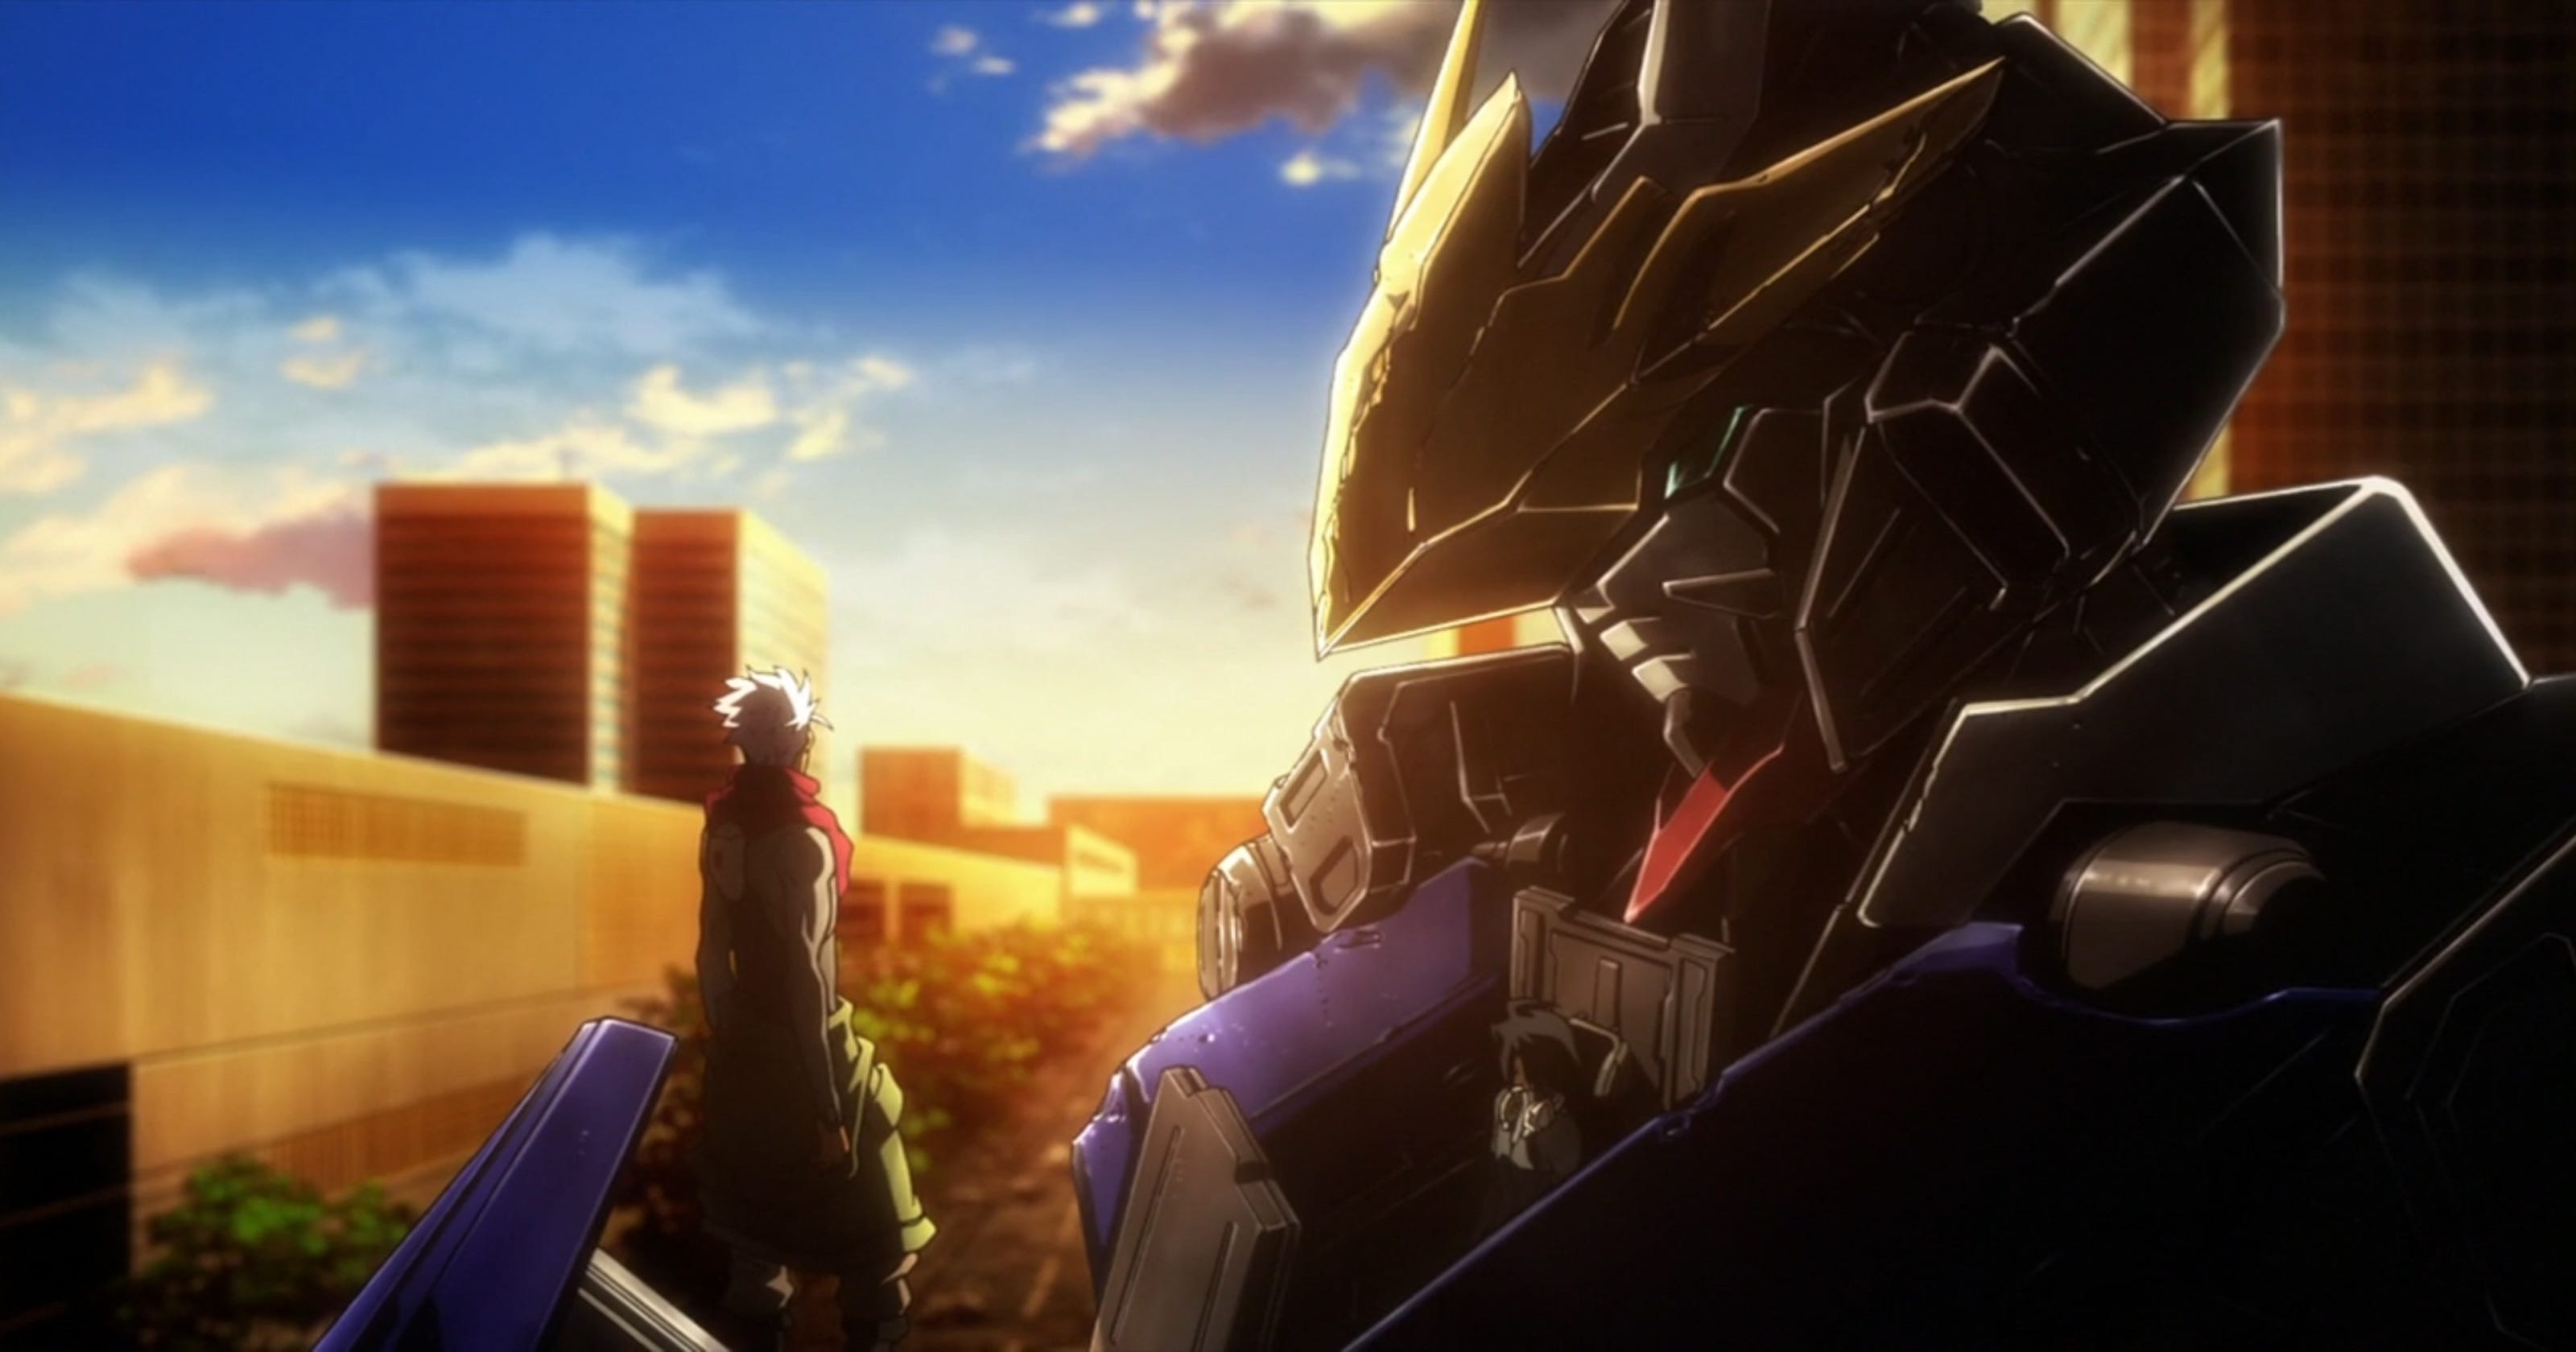 iron blooded orphans season 1 ending